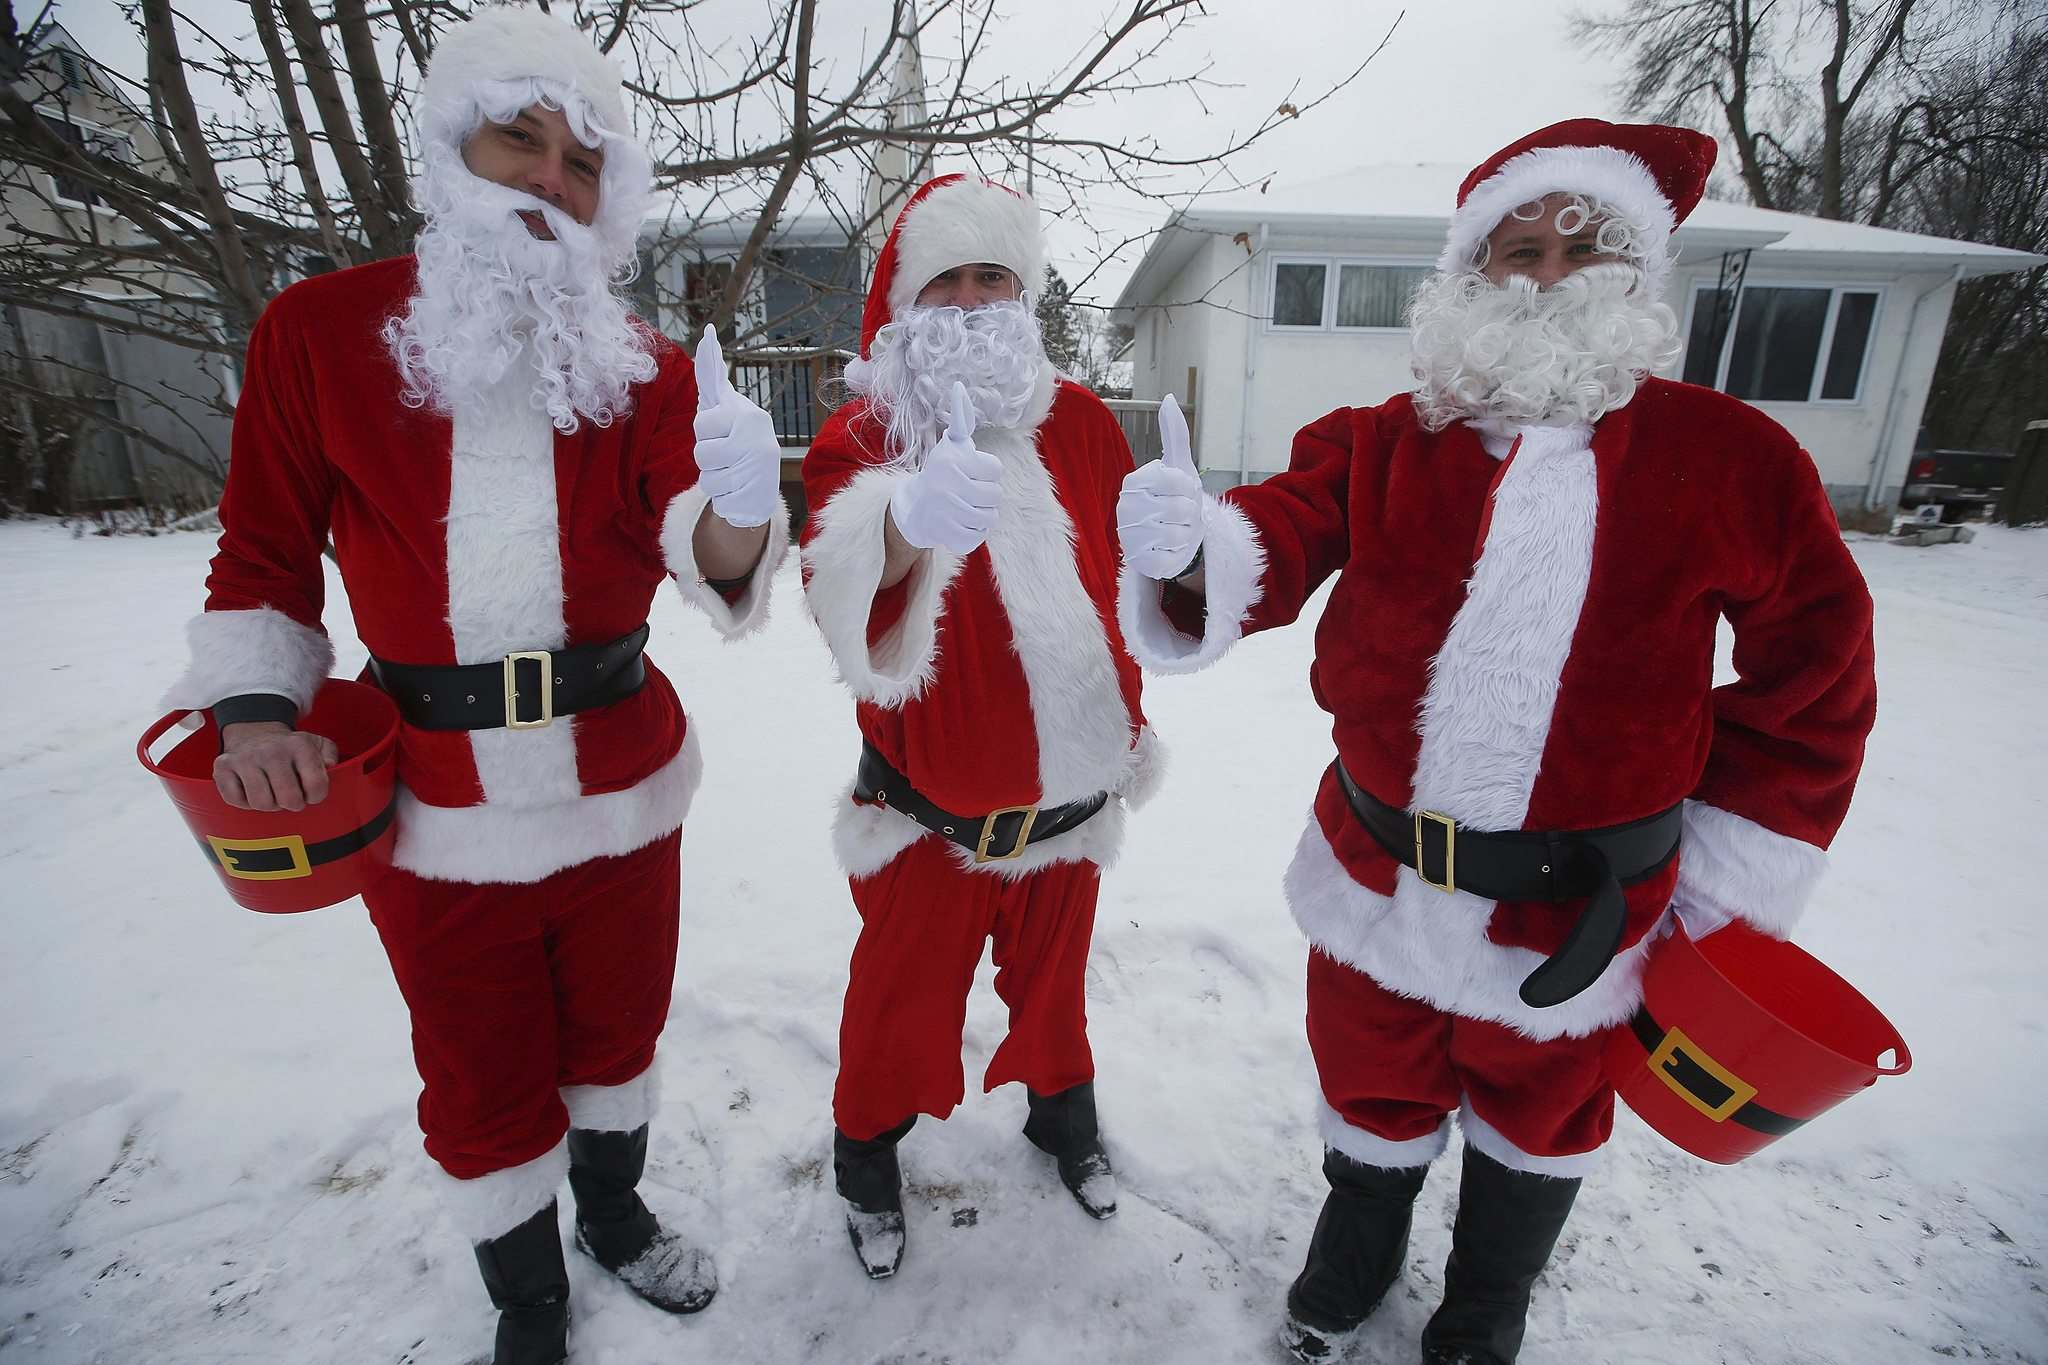 JOHN WOODS / WINNIPEG FREE PRESSMichael Cheetham, from left, Jason Gray and Lee Jacobson dress as Santa and go around visiting children outside their homes Sunday, December 13, 2020. The friends are collecting food for Harvest Manitoba.</p>